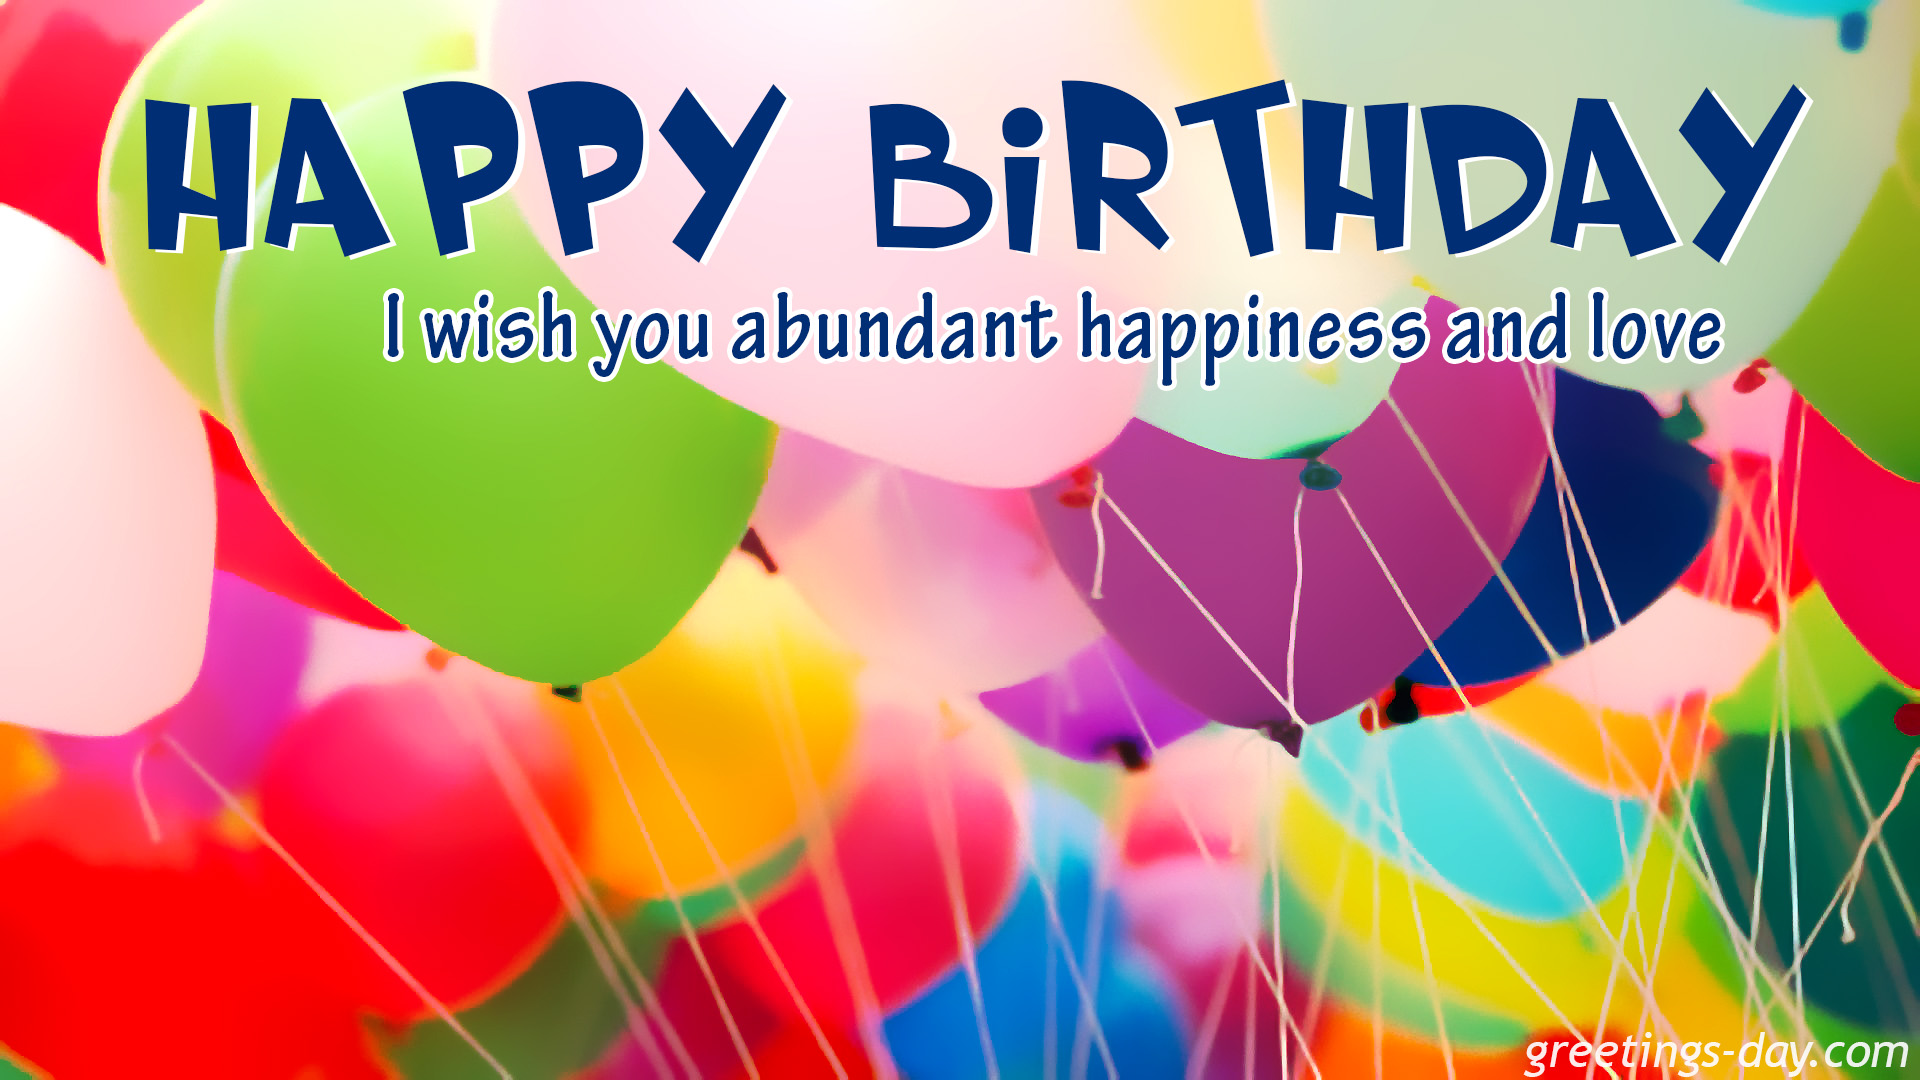 happy birthday  free birthday ecards, wishes and greetings., Birthday card